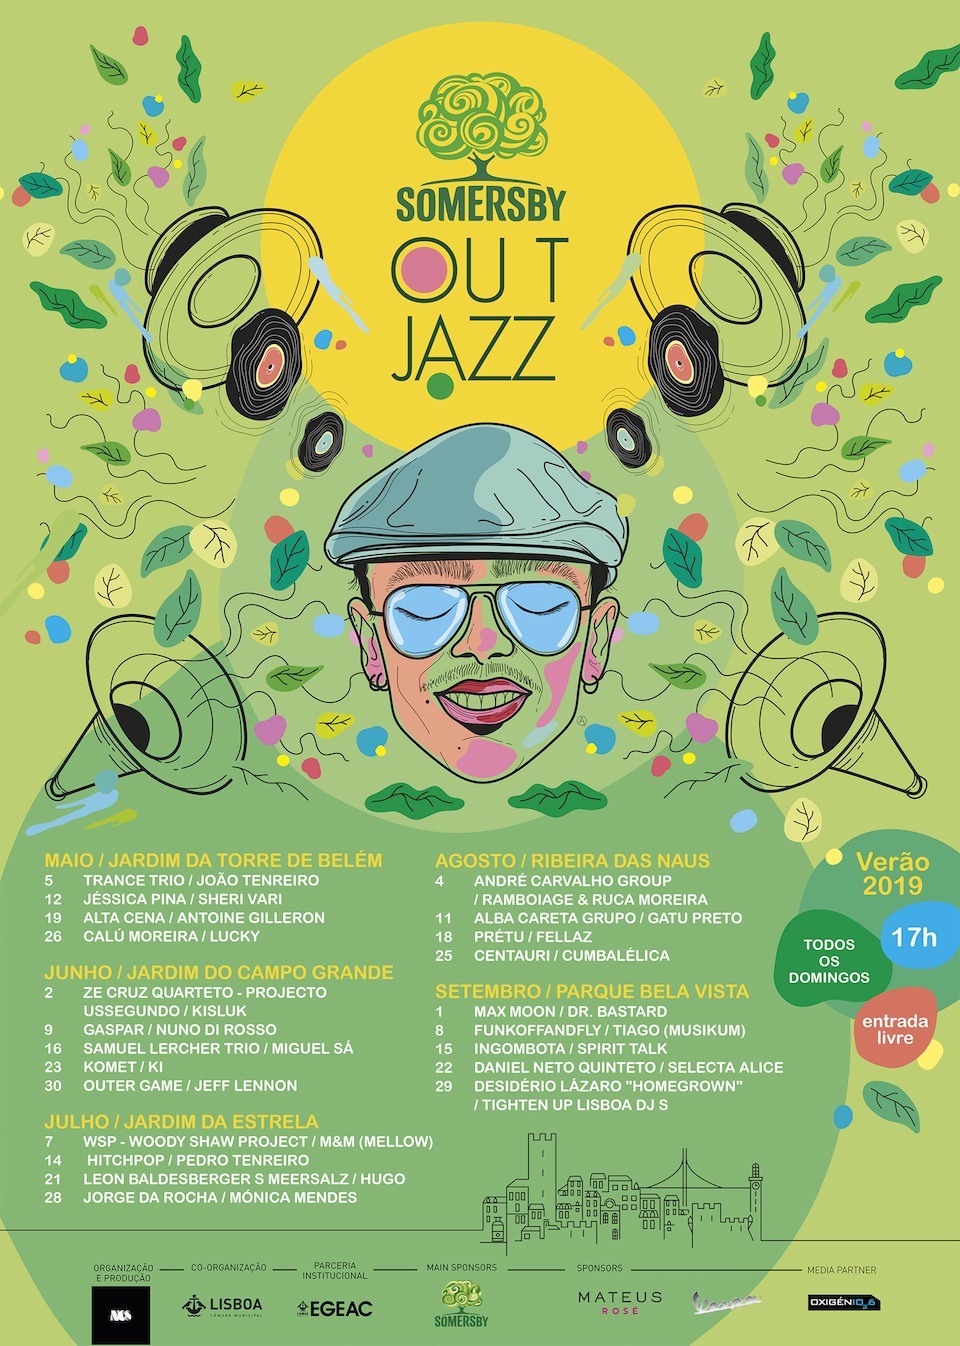 OutJazz 2019 dates and locations